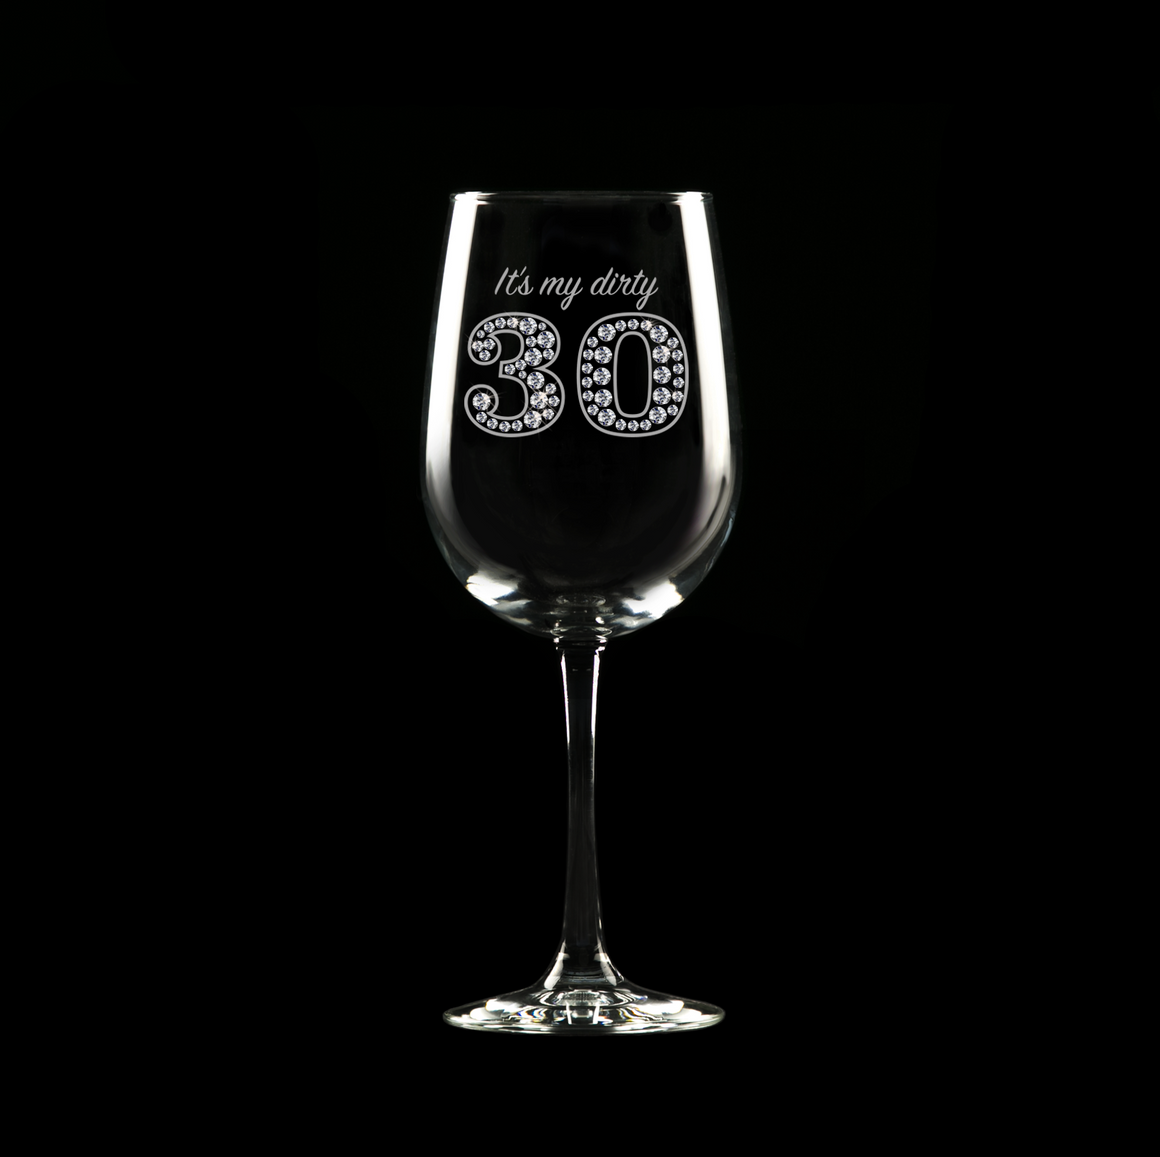 30 -It's My dirty 30